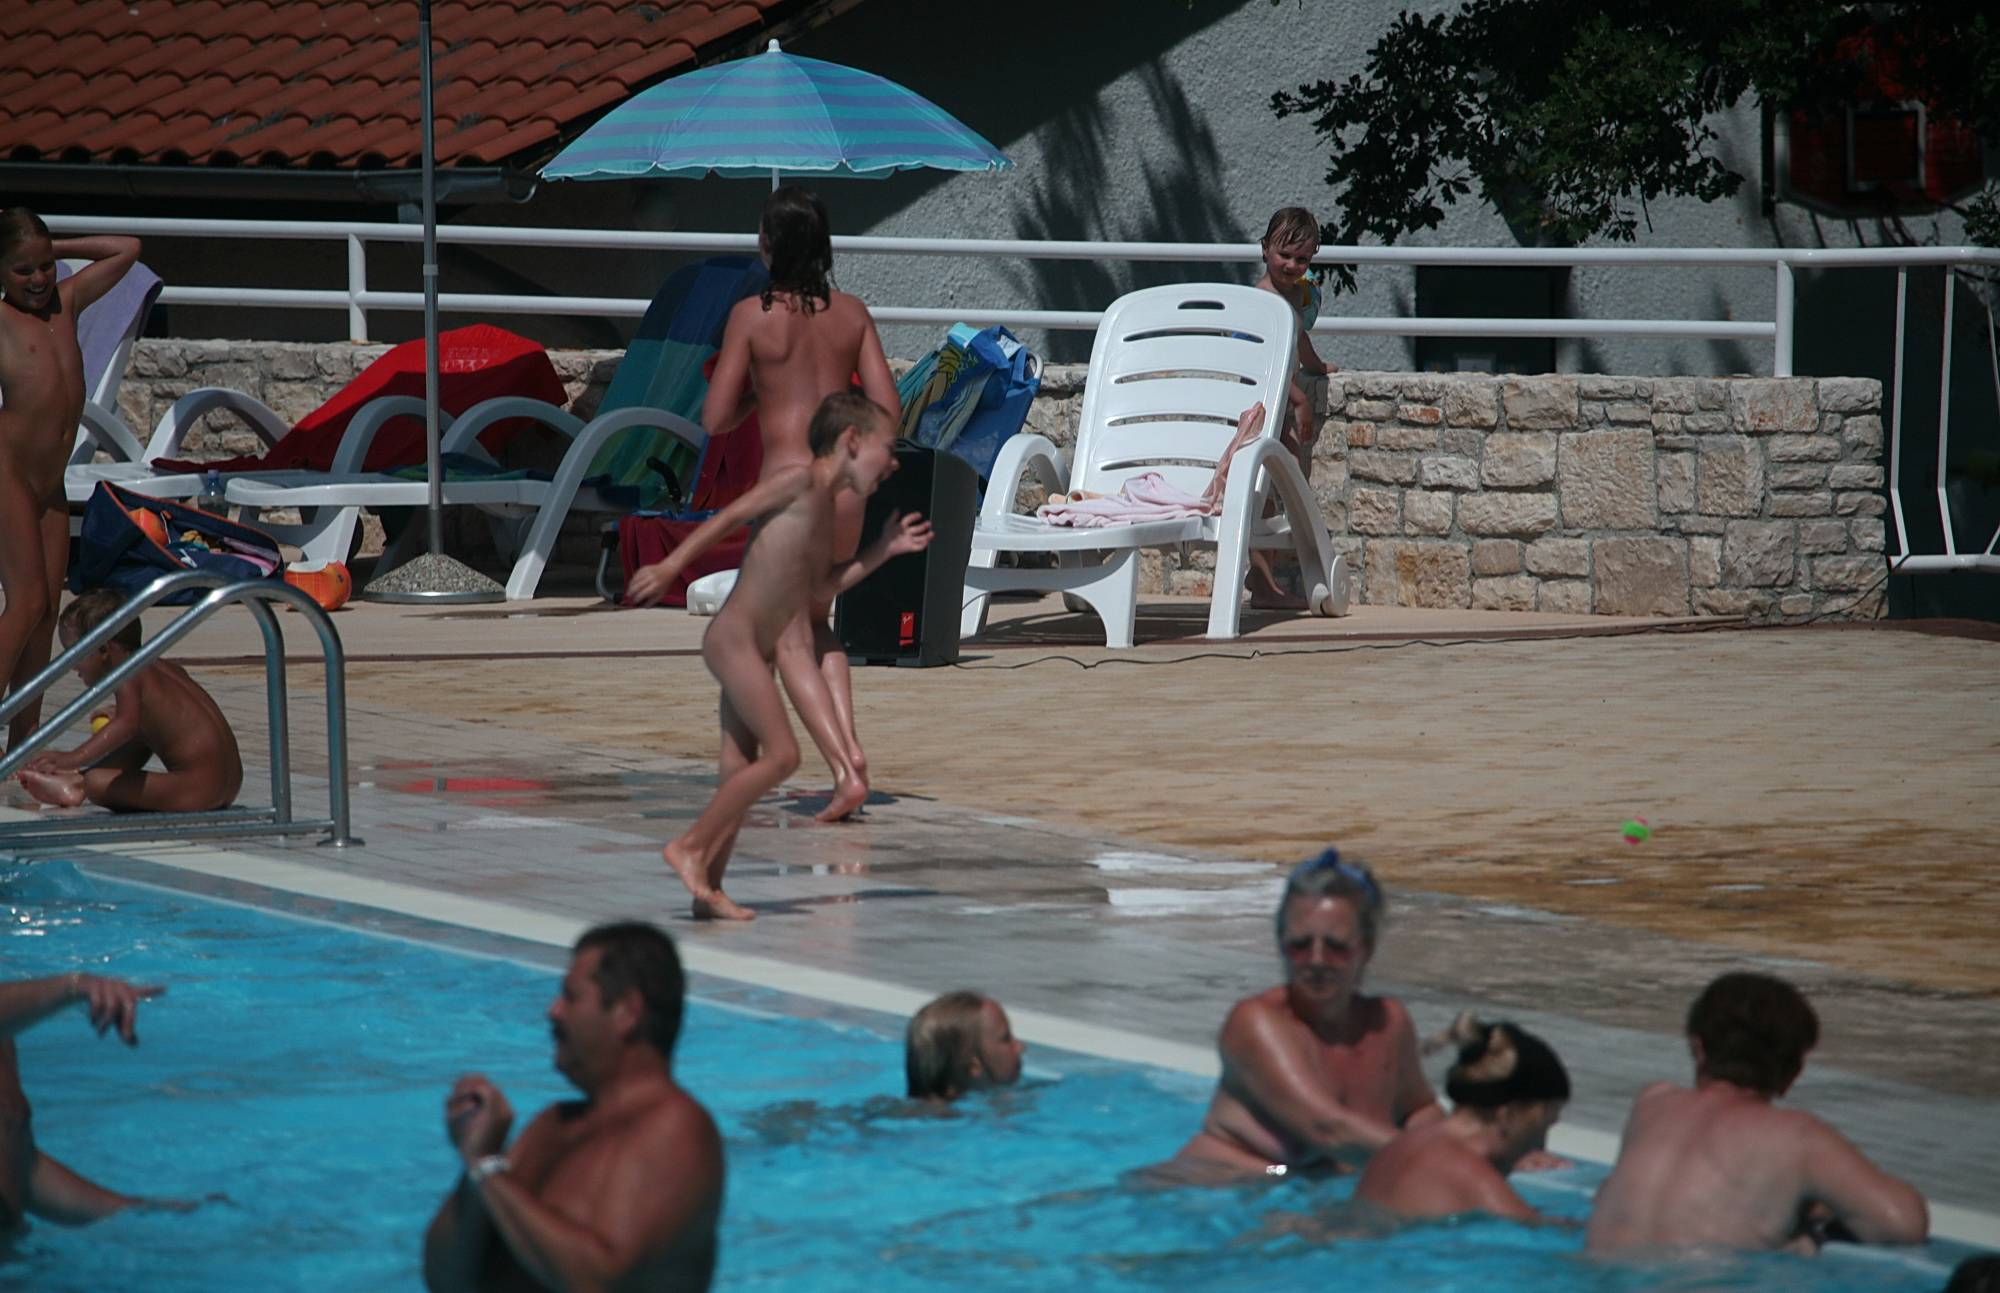 Pure Nudism Drag and Drop in the Pool - 1